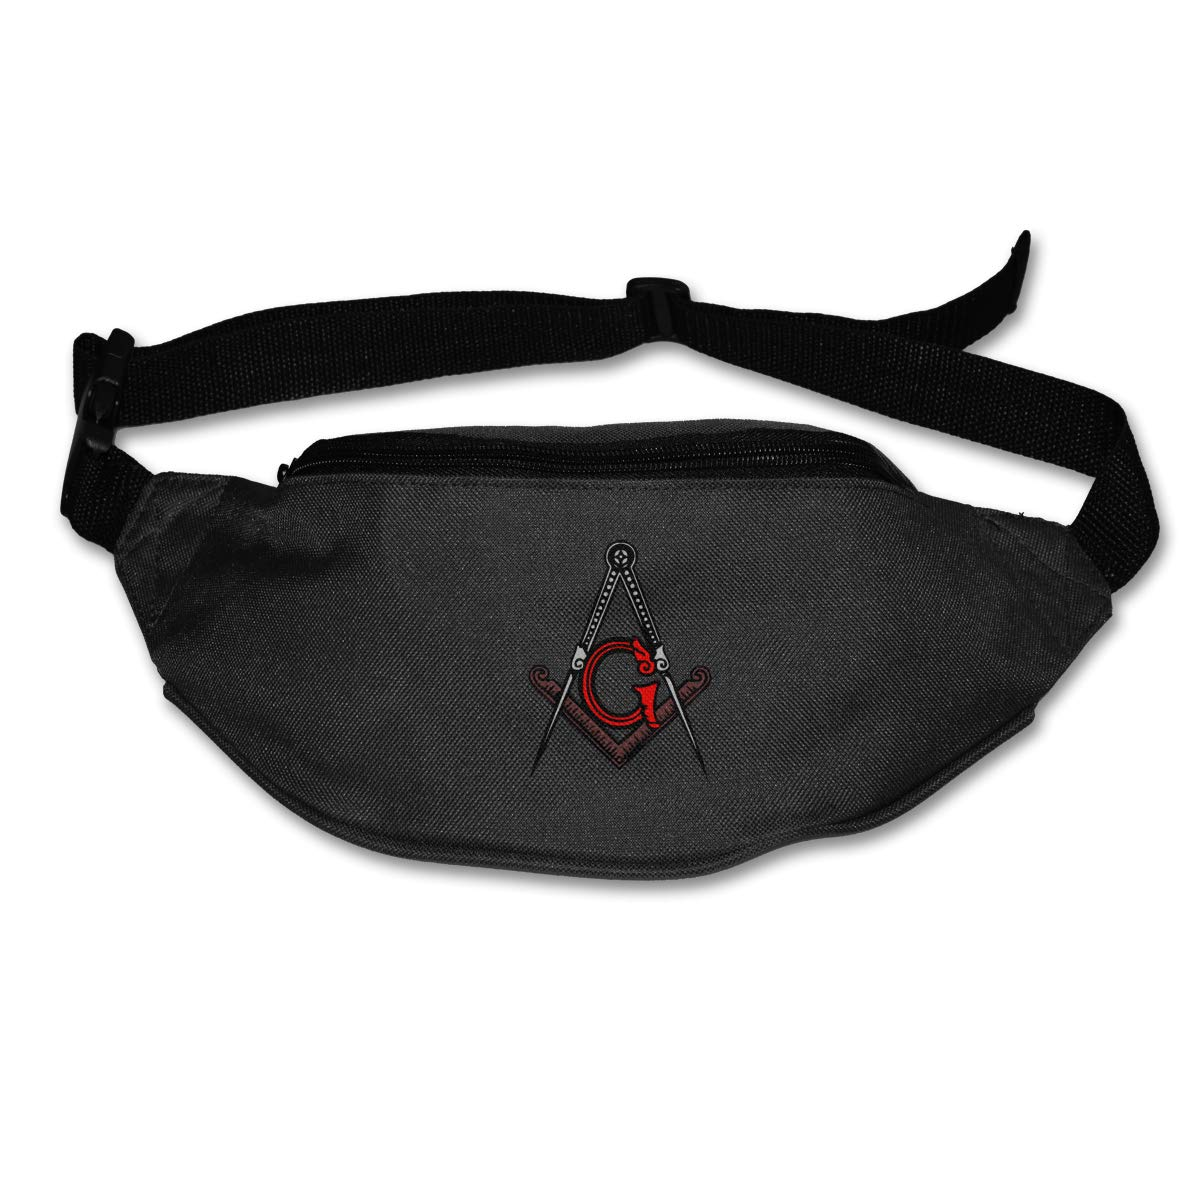 Freemason Square And Compass Red Waist Pack Fanny Pack Adjustable For Hike